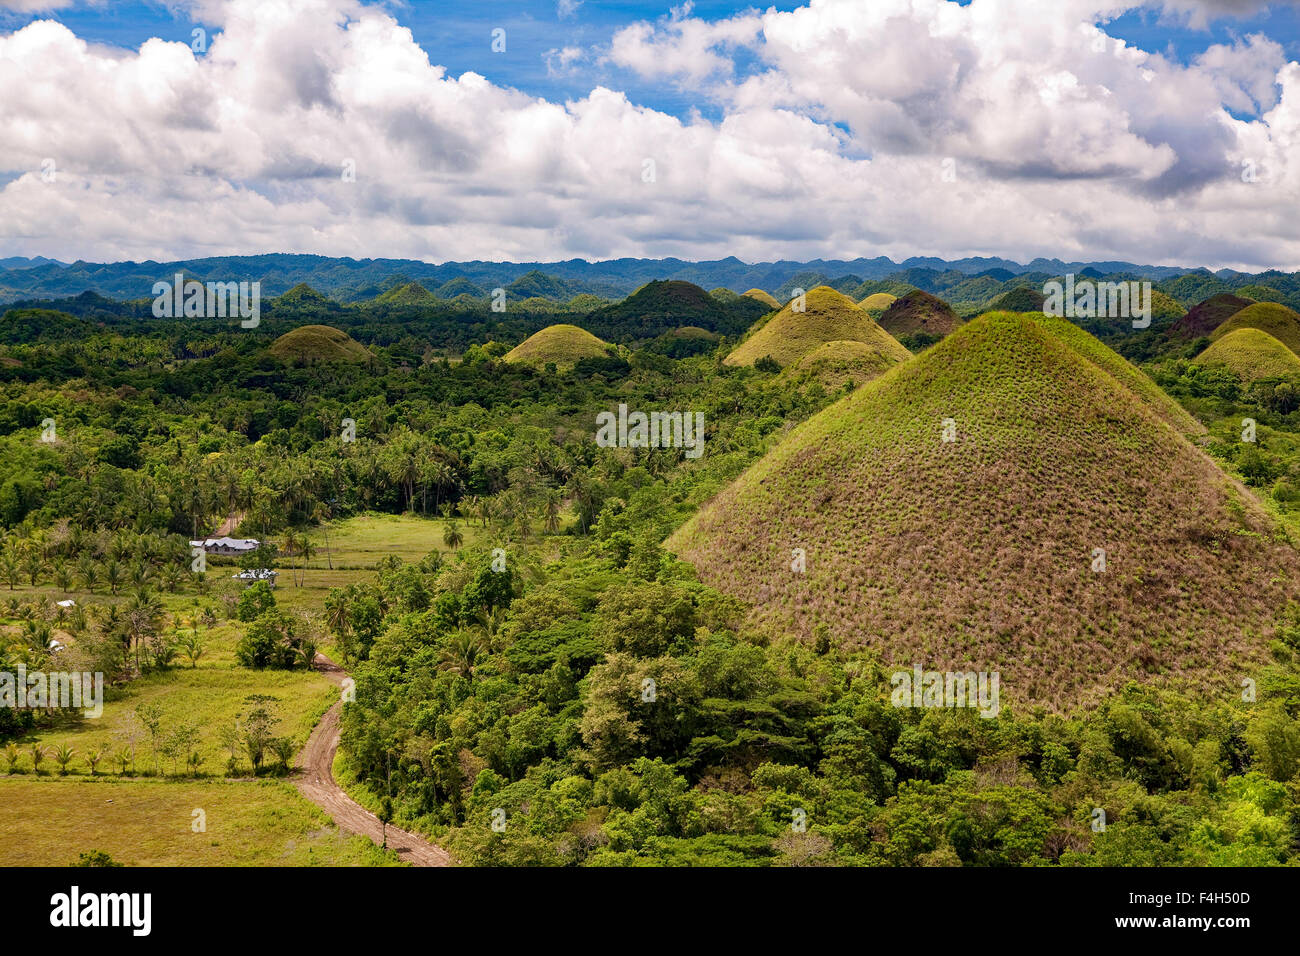 The Chocolate Hills of Bohol Island, Philippines numbering about ...